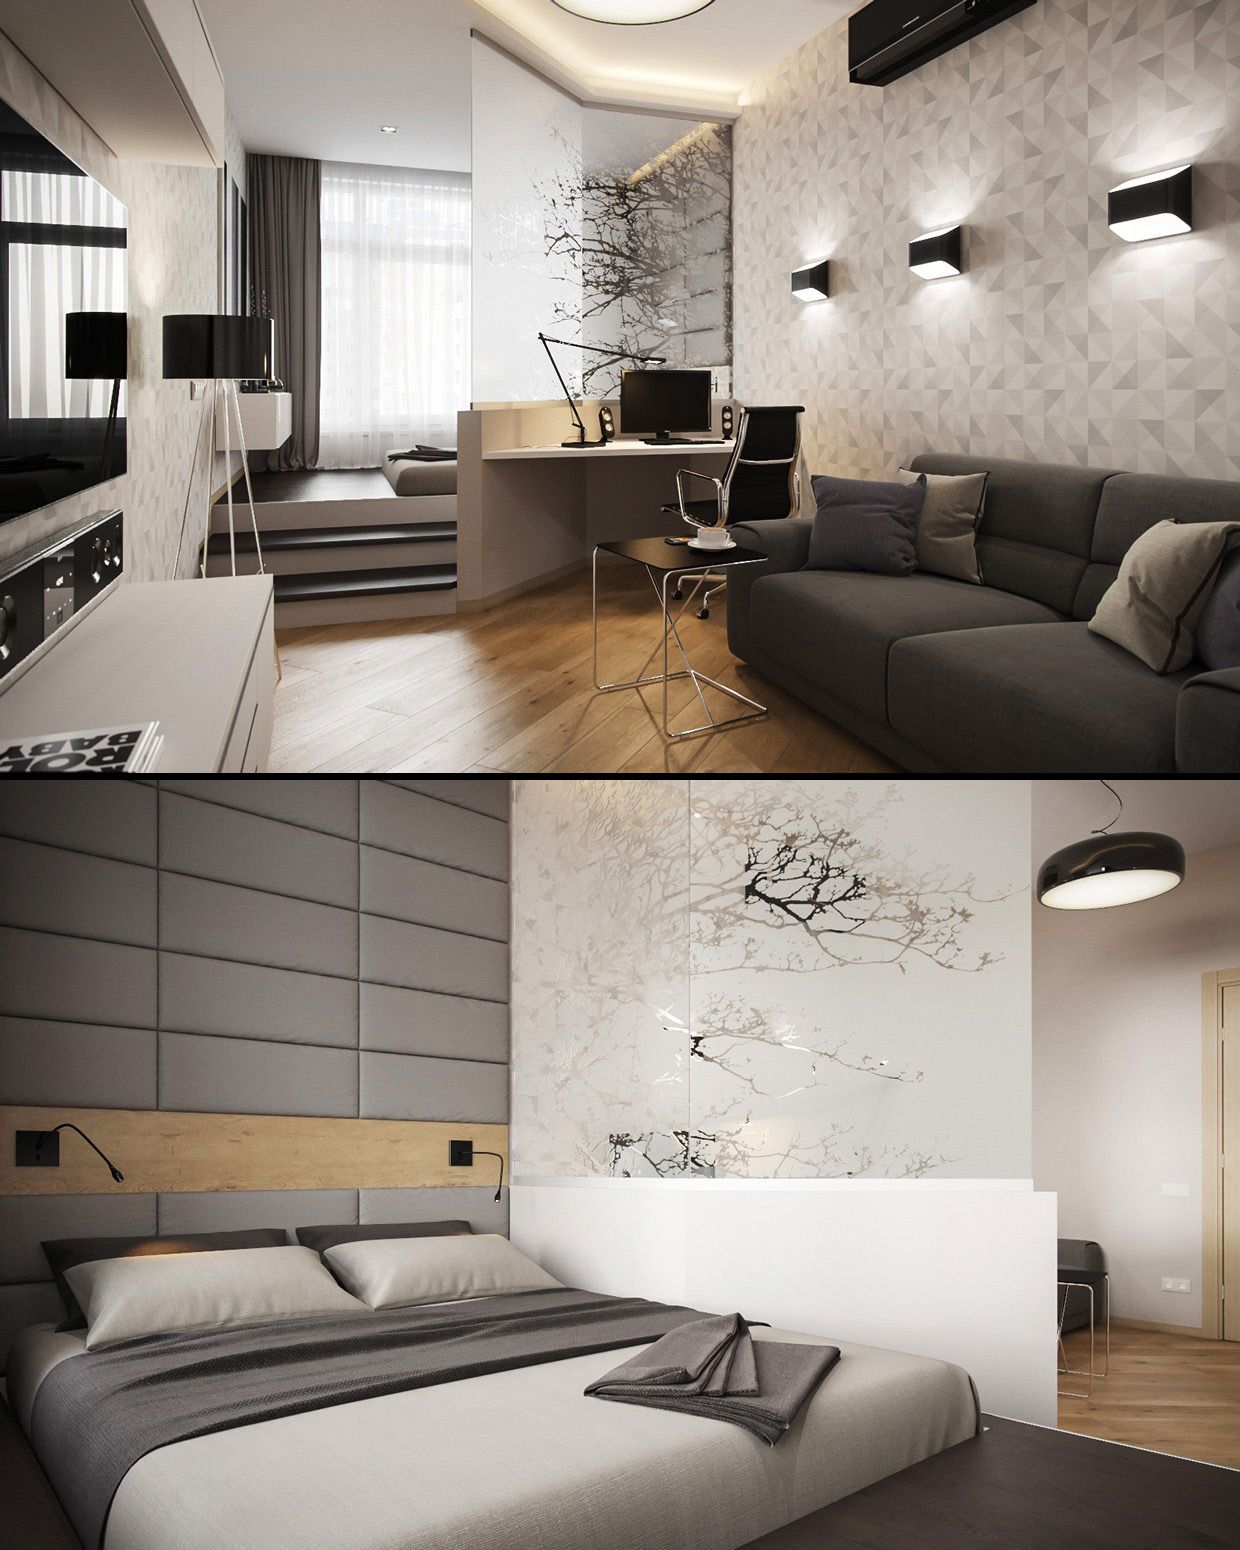 33 Smart Small Bedroom Design Ideas: Small, Smart Studios With Slick, Simple Designs